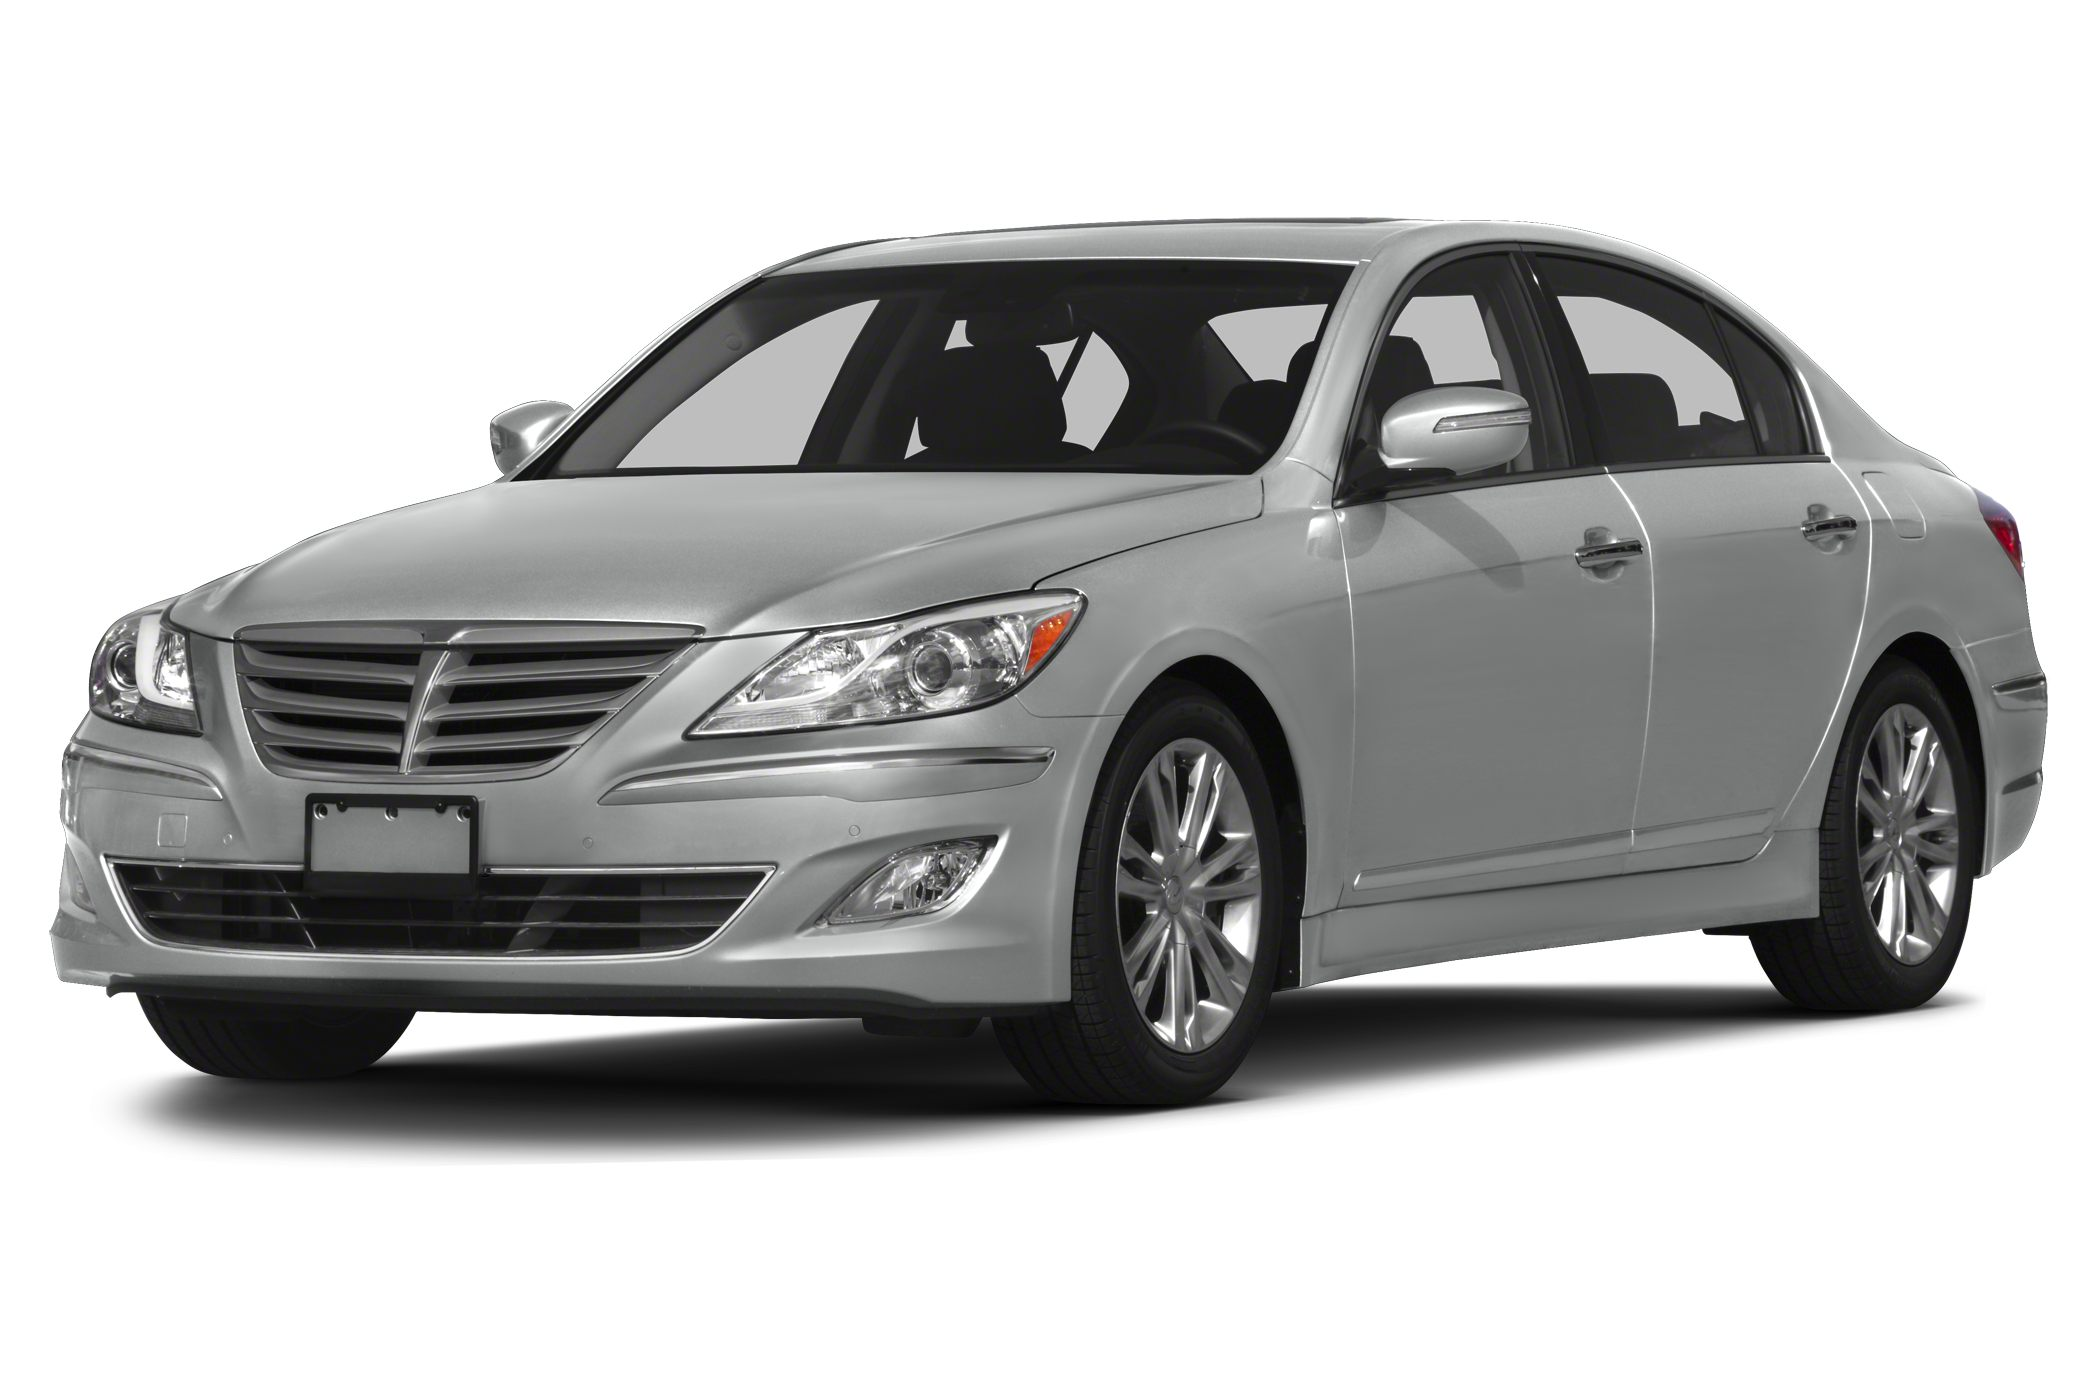 2013 Hyundai Genesis 3.8 Sedan for sale in Chandler for $26,111 with 20,581 miles